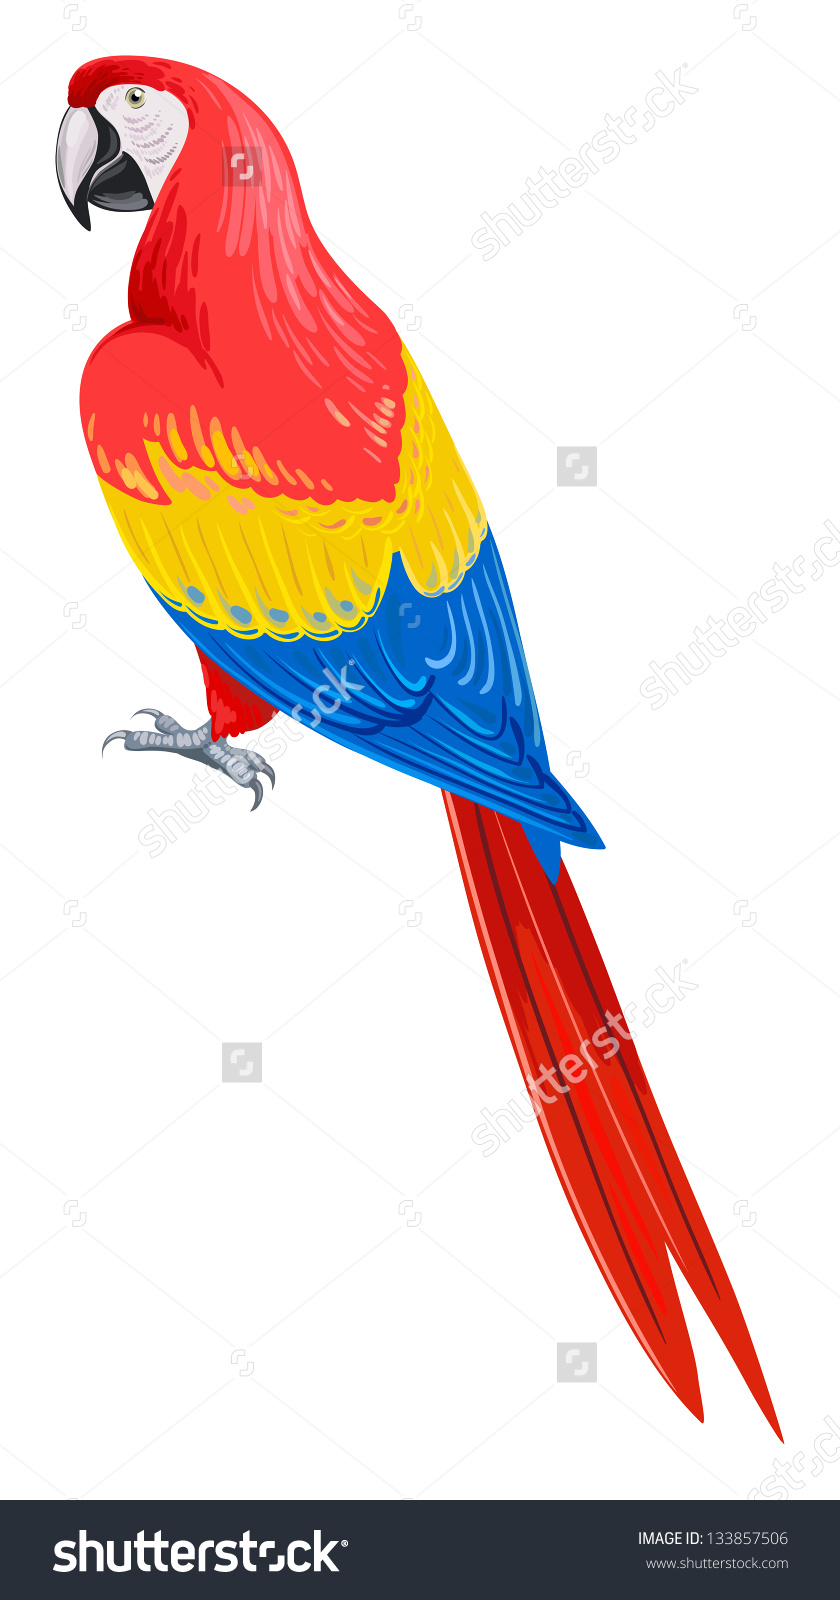 Scarlet Macaw clipart animated #15